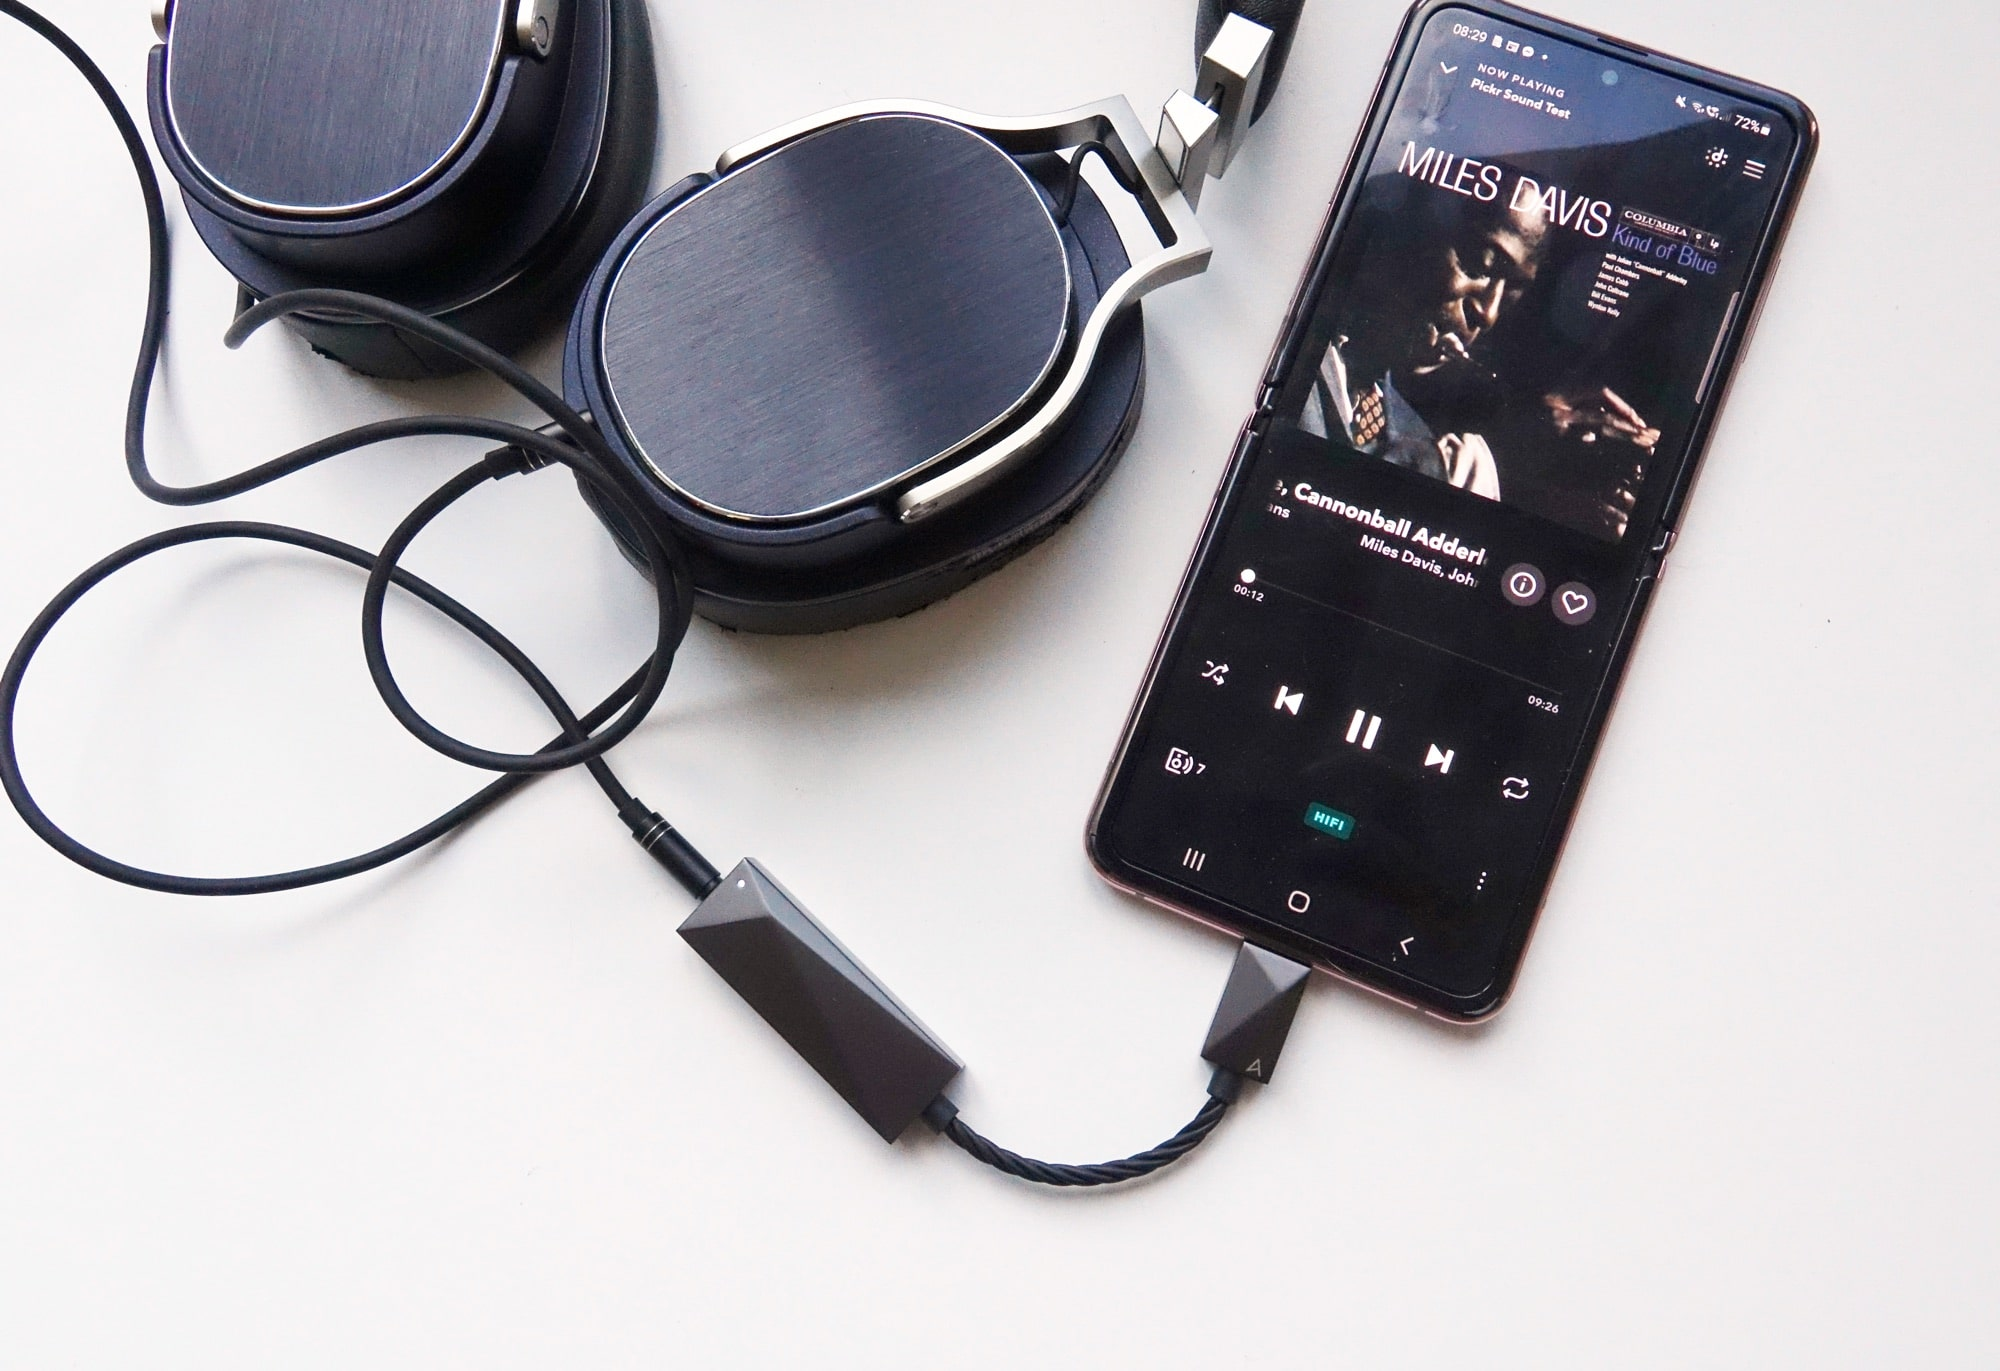 The Astell & Kern DAC Type C Cable plugged into the Galaxy Z Flip and Oppo PM-3